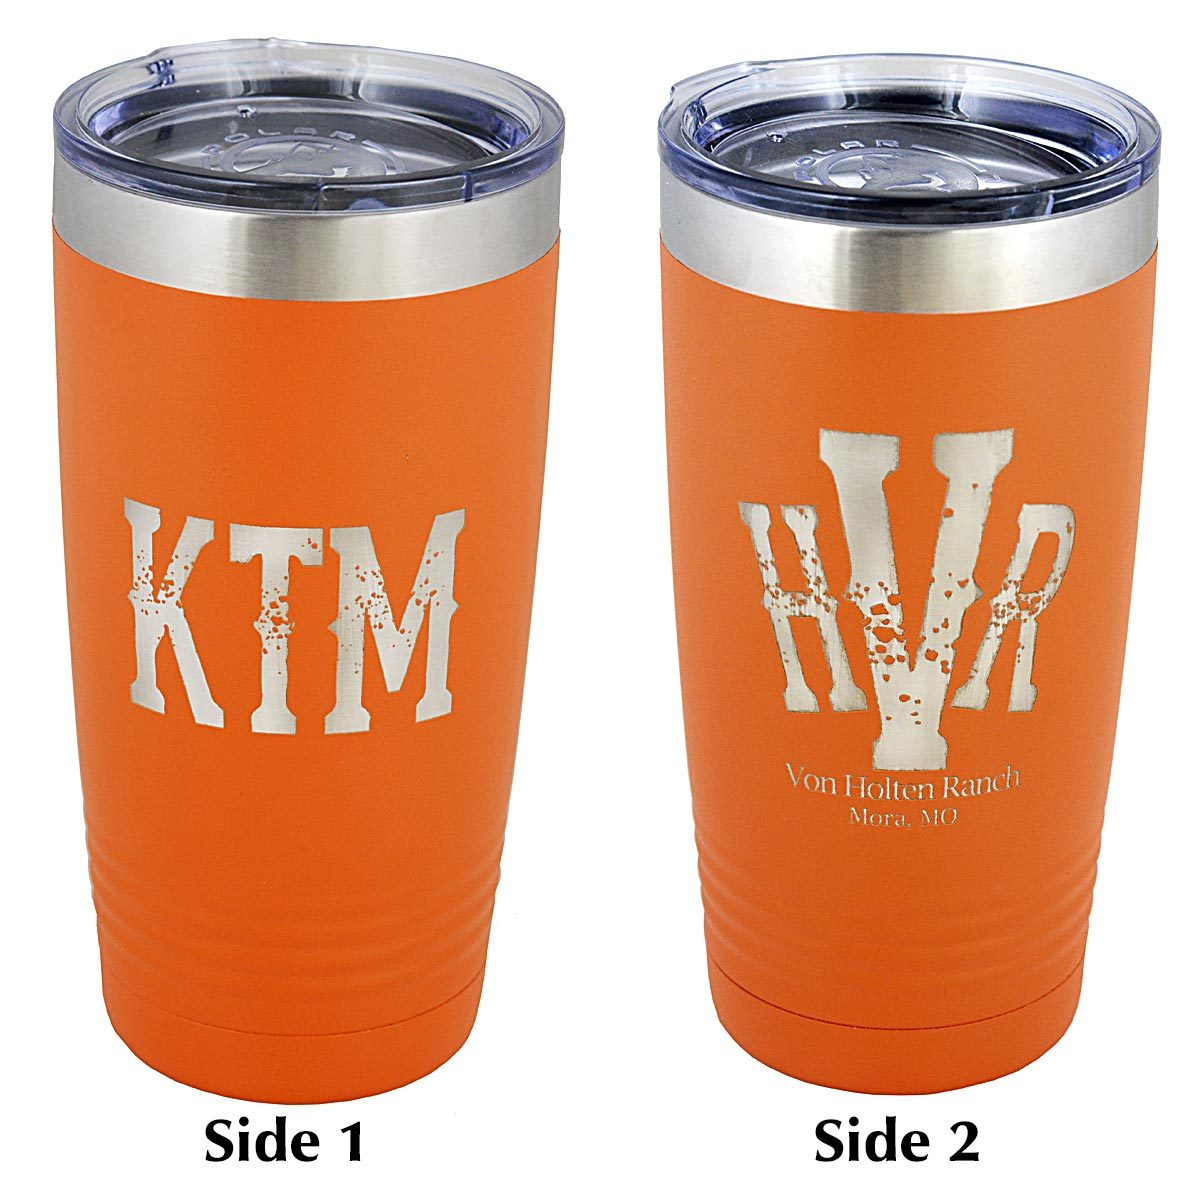 KTM 20 oz. Insulated Tumbler 20oz-KTM-tumbler